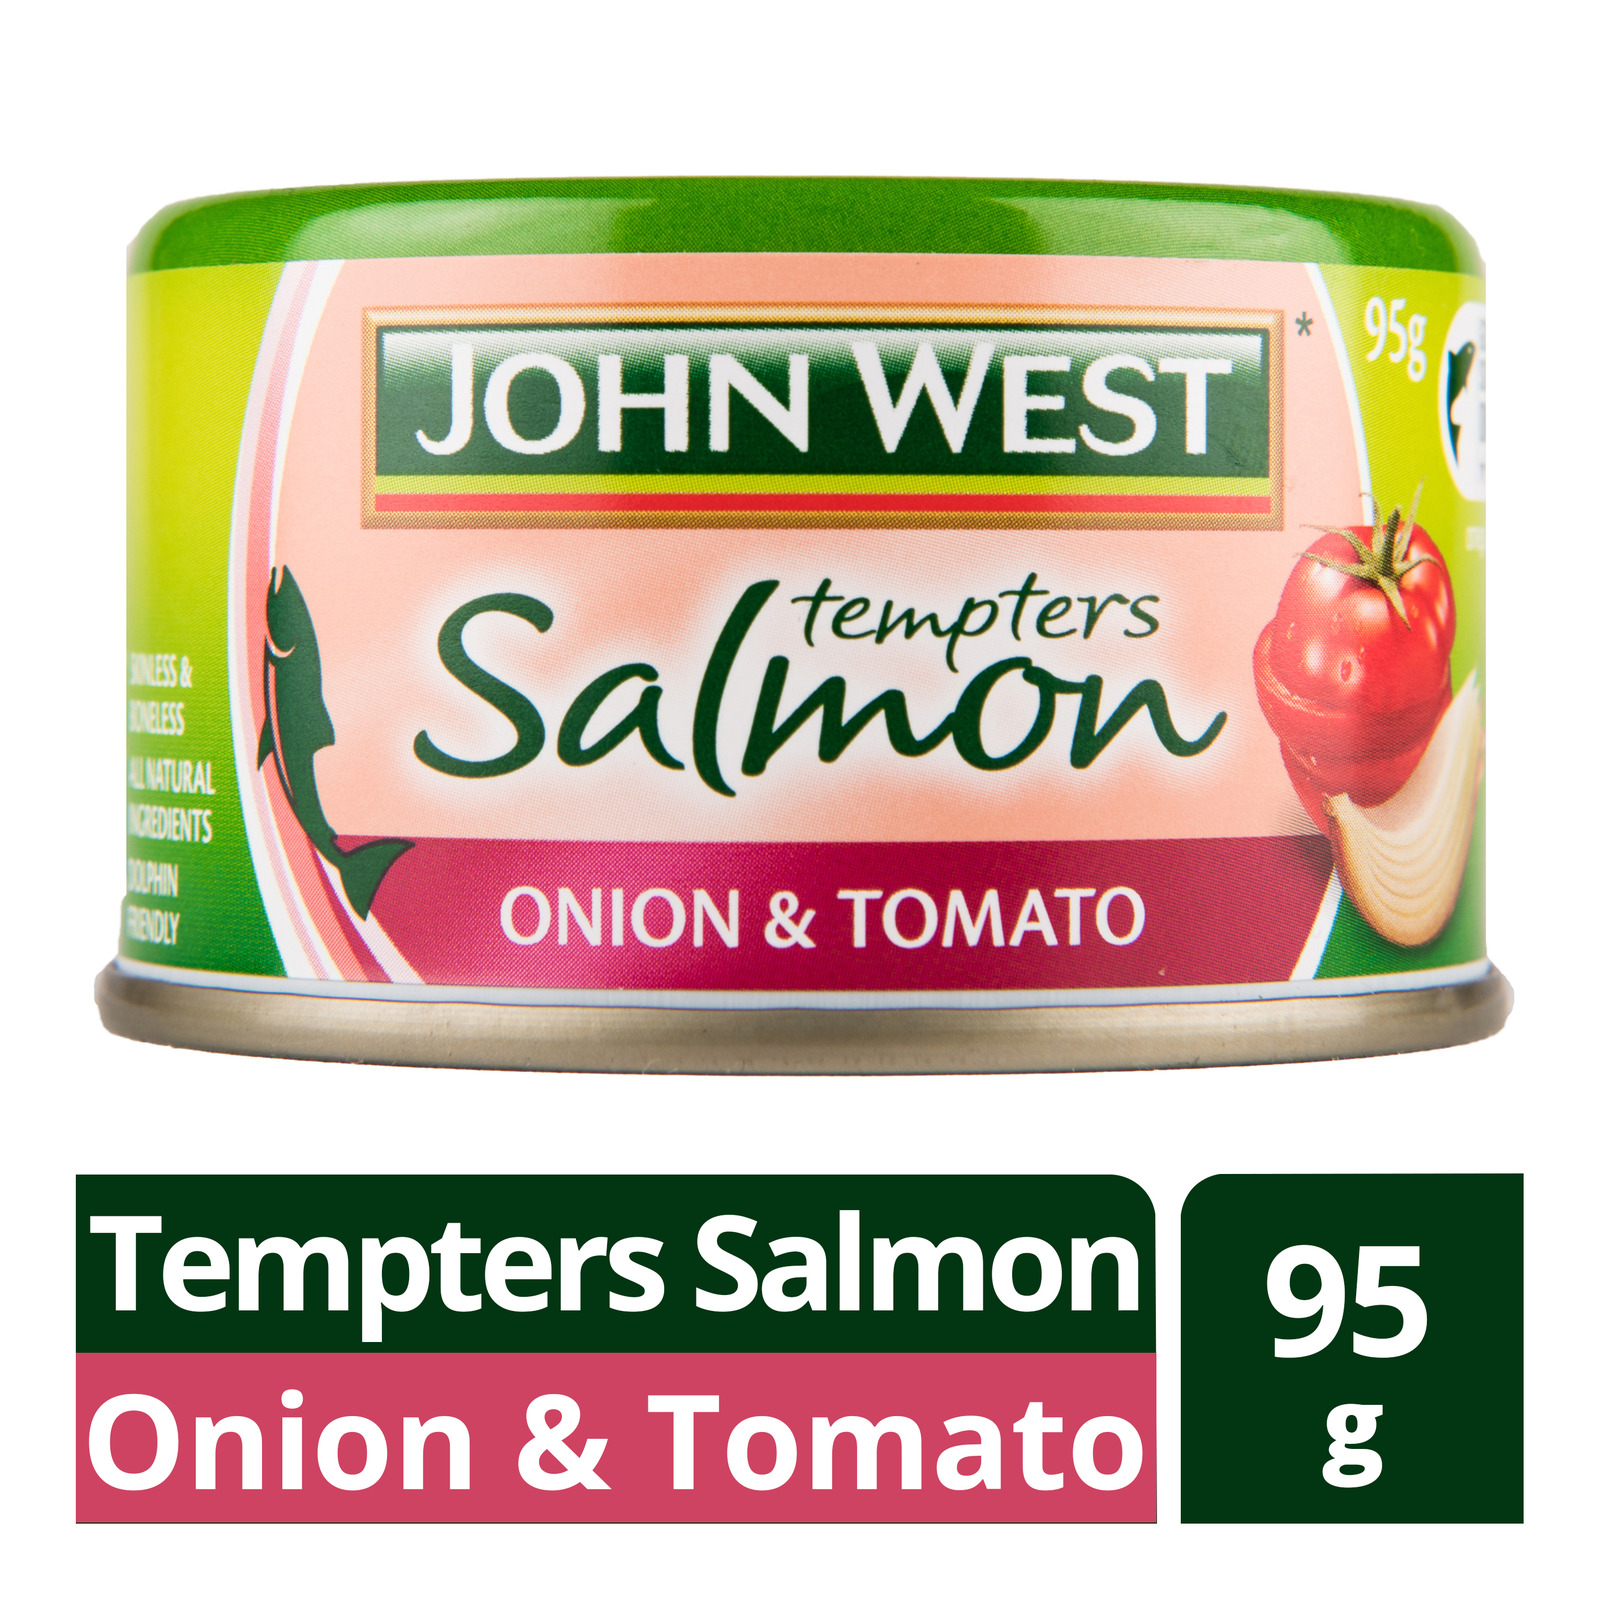 John West Tempters Salmon - Onion & Tomato